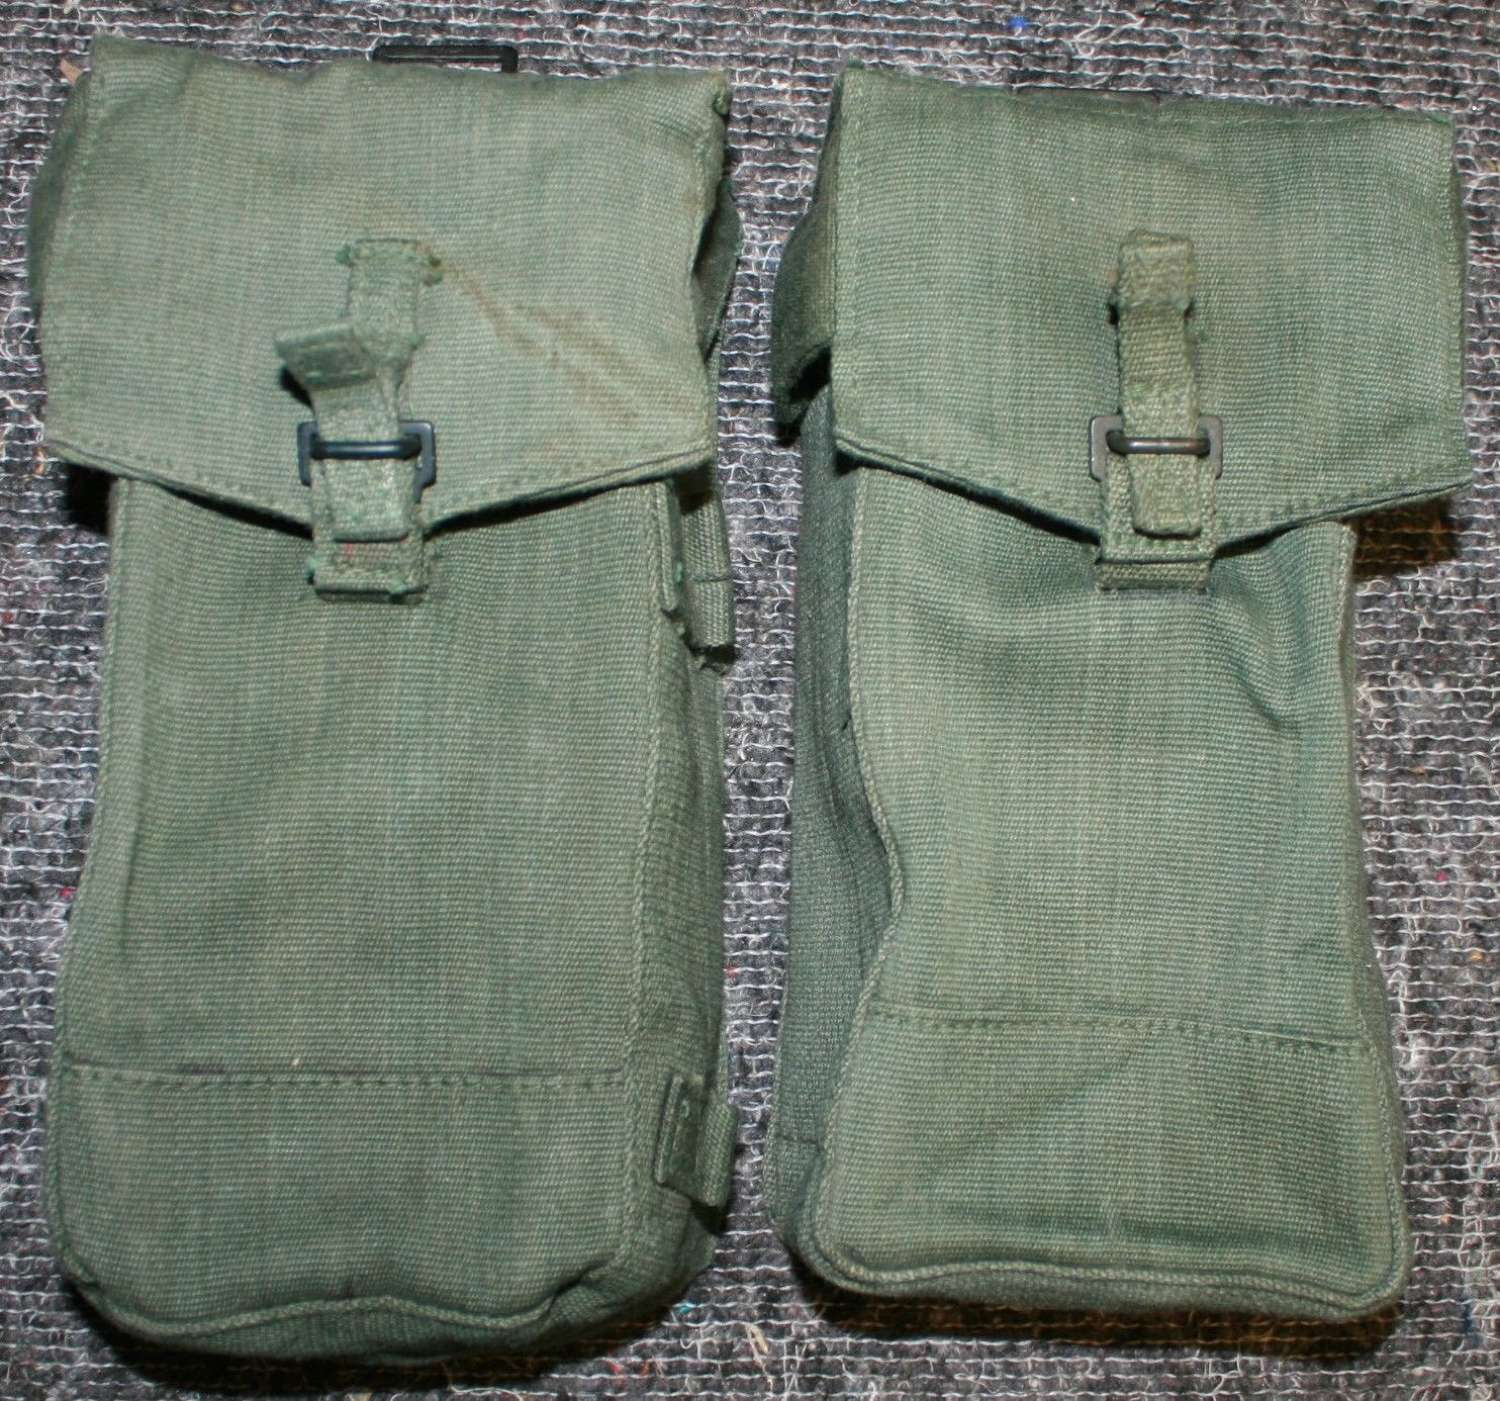 A PAIR OF 44 PATTERN 1945 DATED AMMO POUCHES